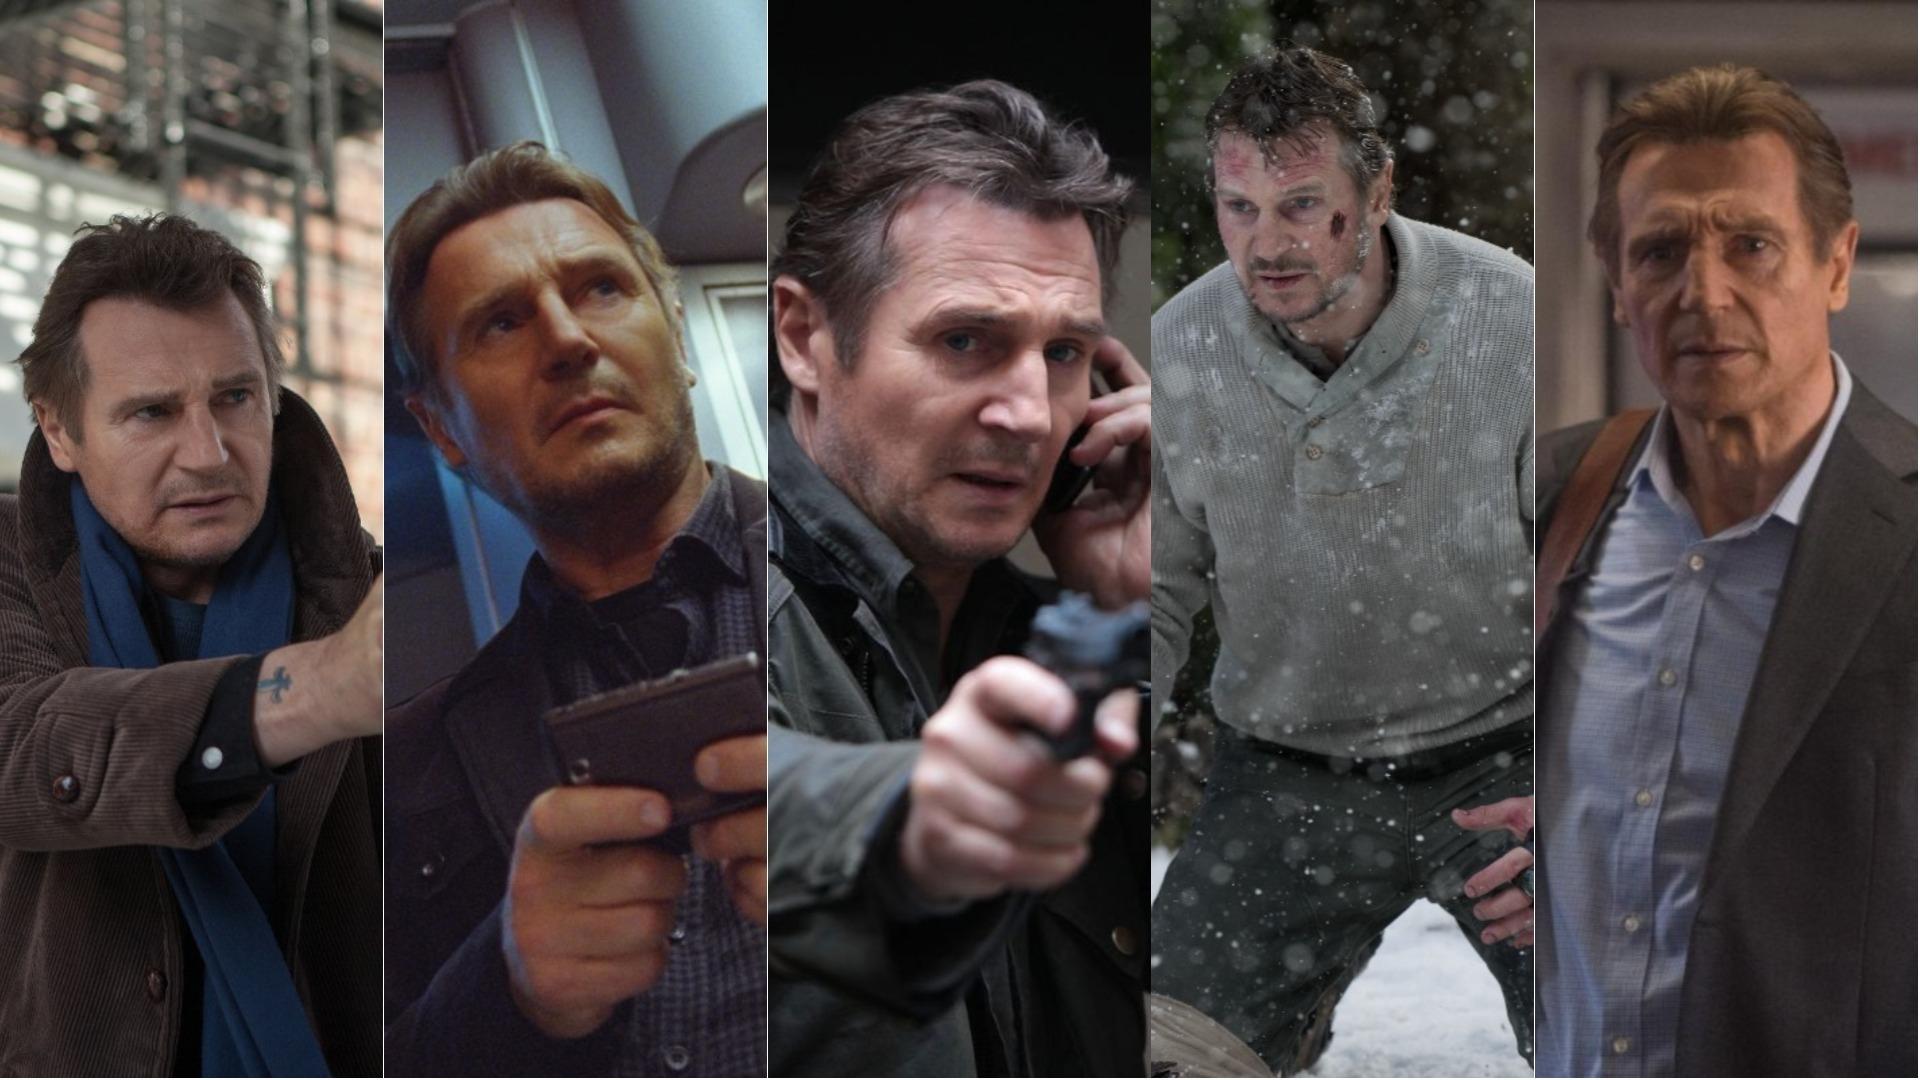 A selection of stills from Liam Neeson's movies.